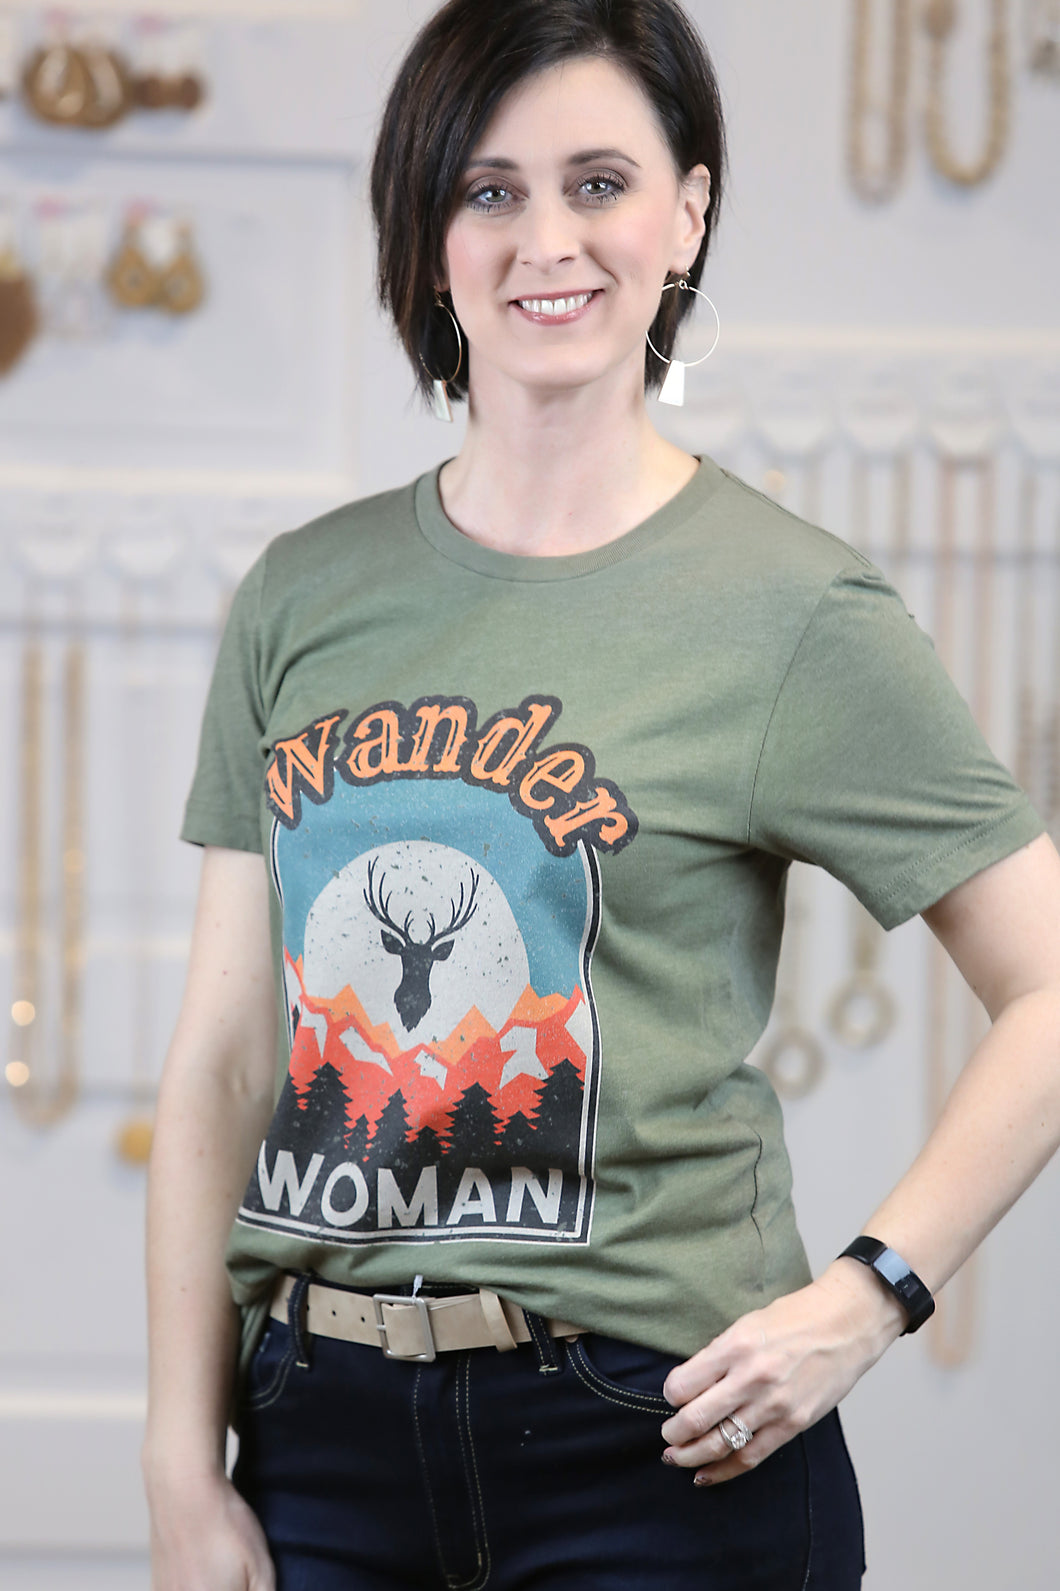 Wander Woman Graphic Tee